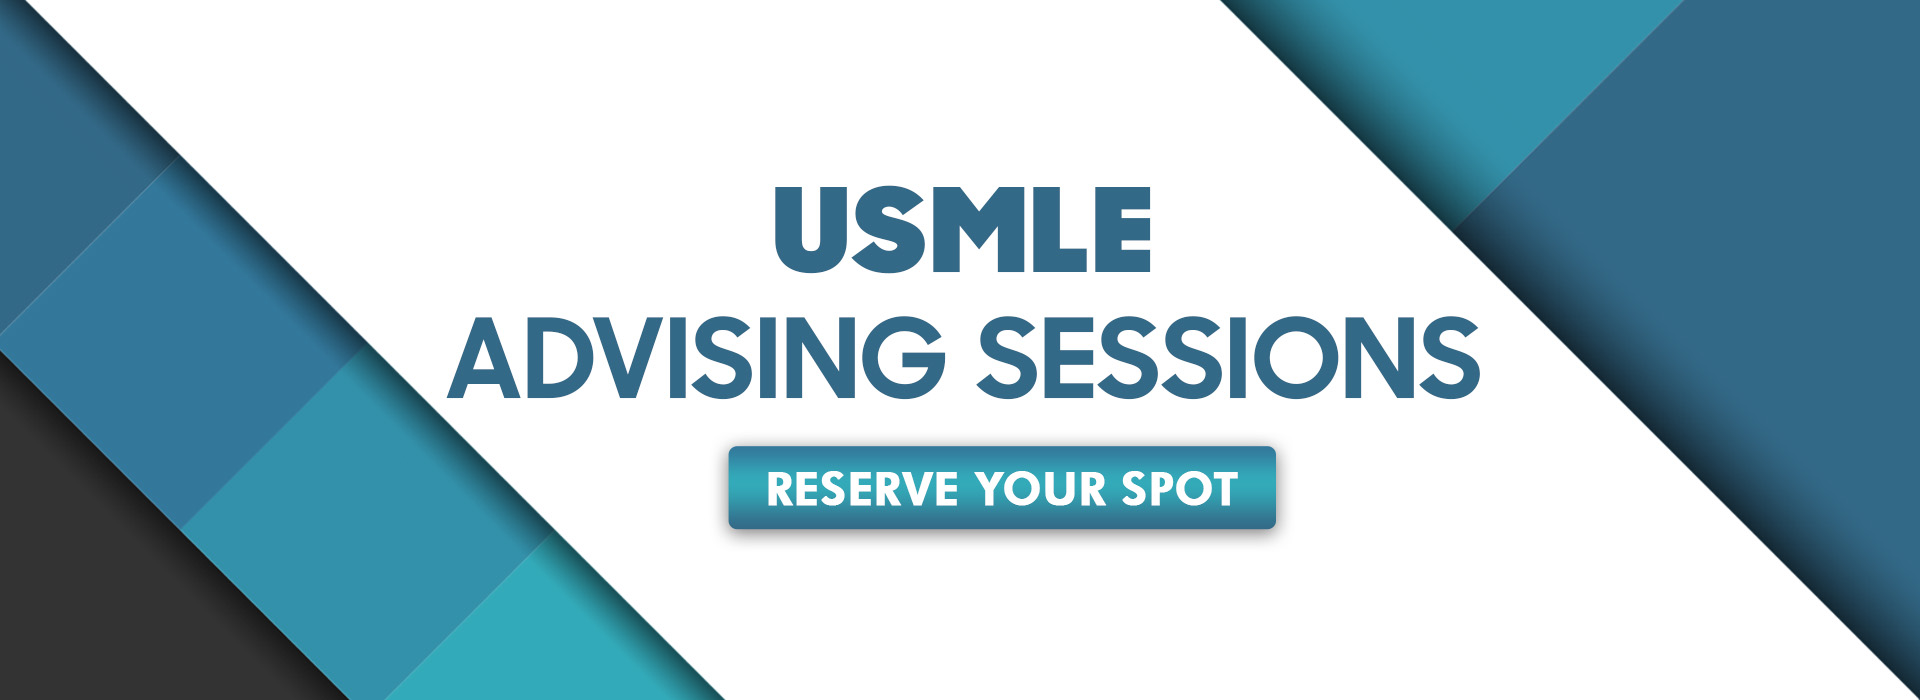 USMLE Advising Sessions